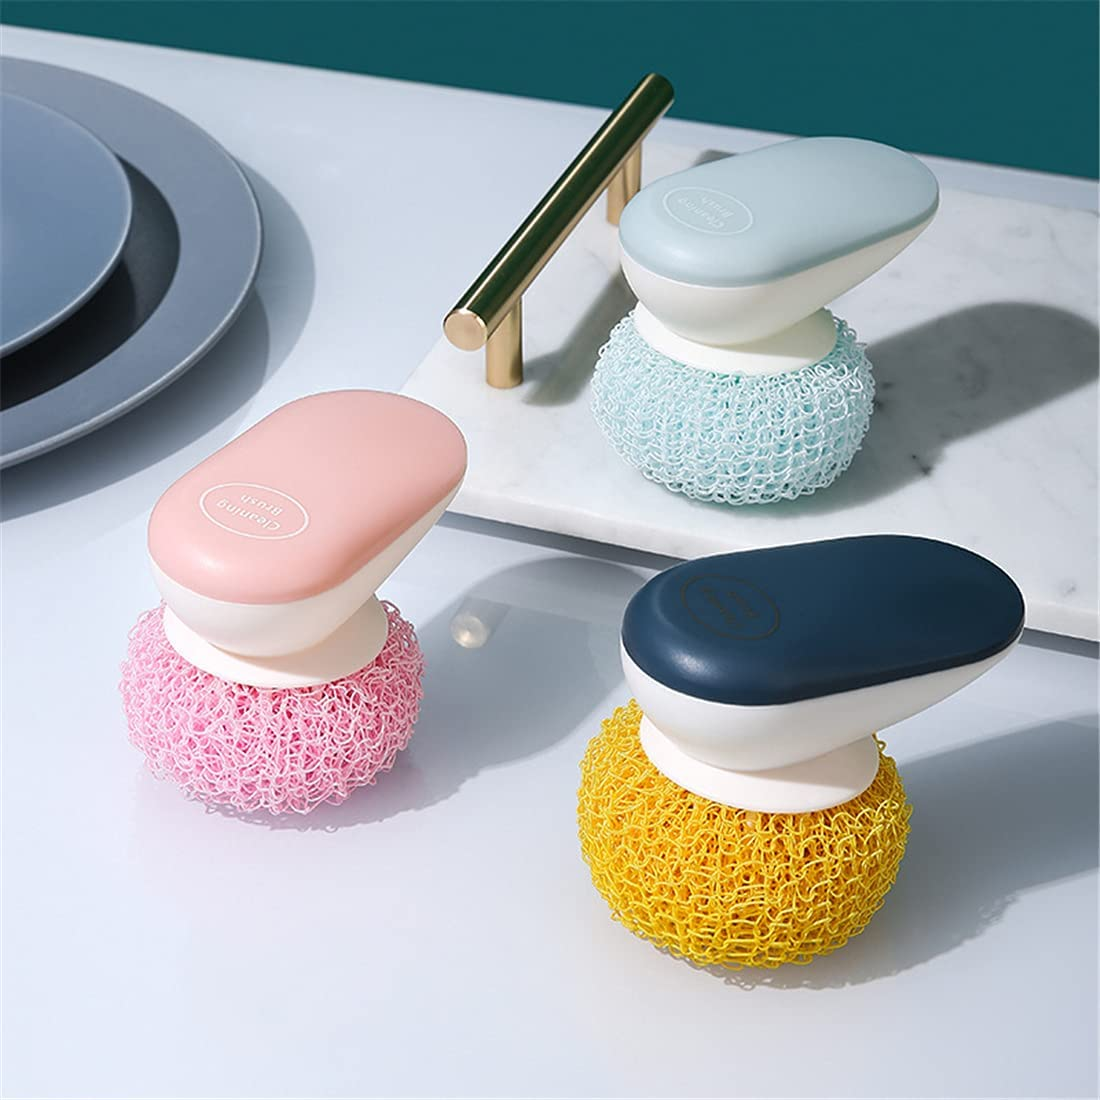 Removable Replaceable Nano Fiber Cleaning Ball Kitchen Dish Pot Washing Tool Cleaning Ball Brush